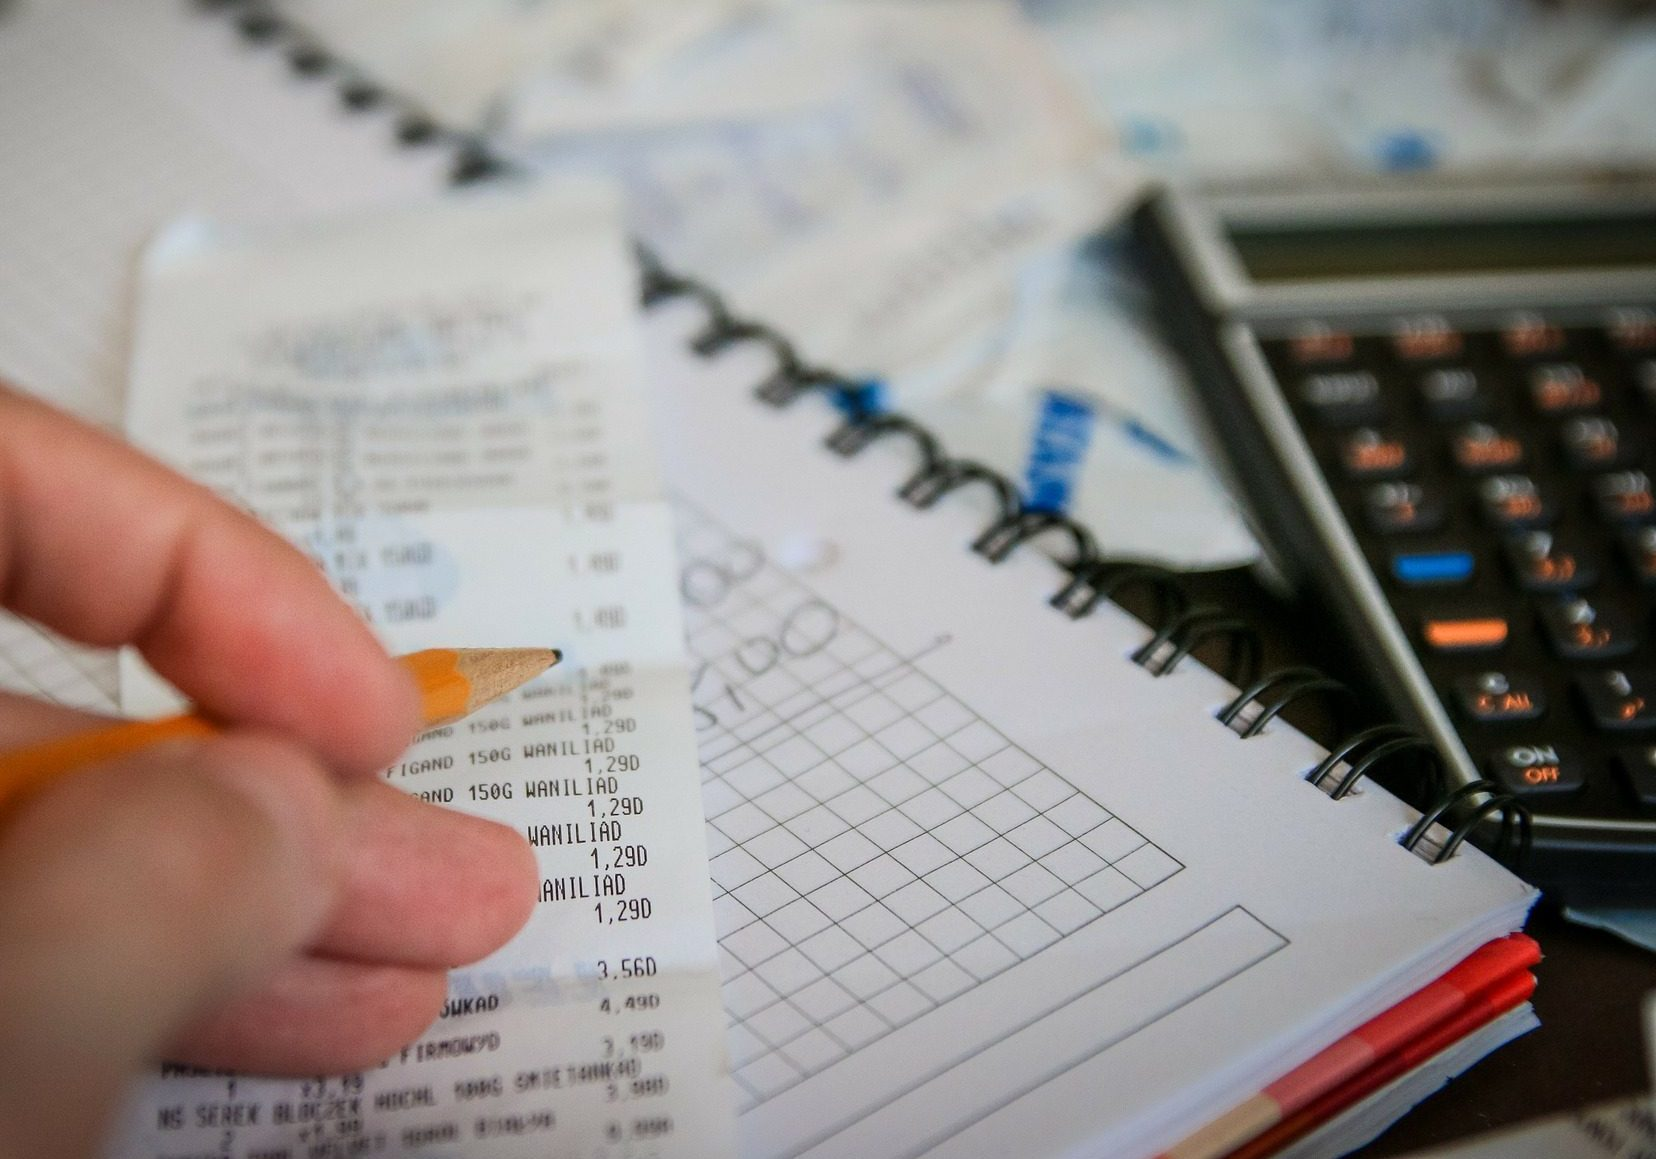 Person holding a pencil over receipt sitting on graph paper and invoices beside a calculator analyzing expenses and profit